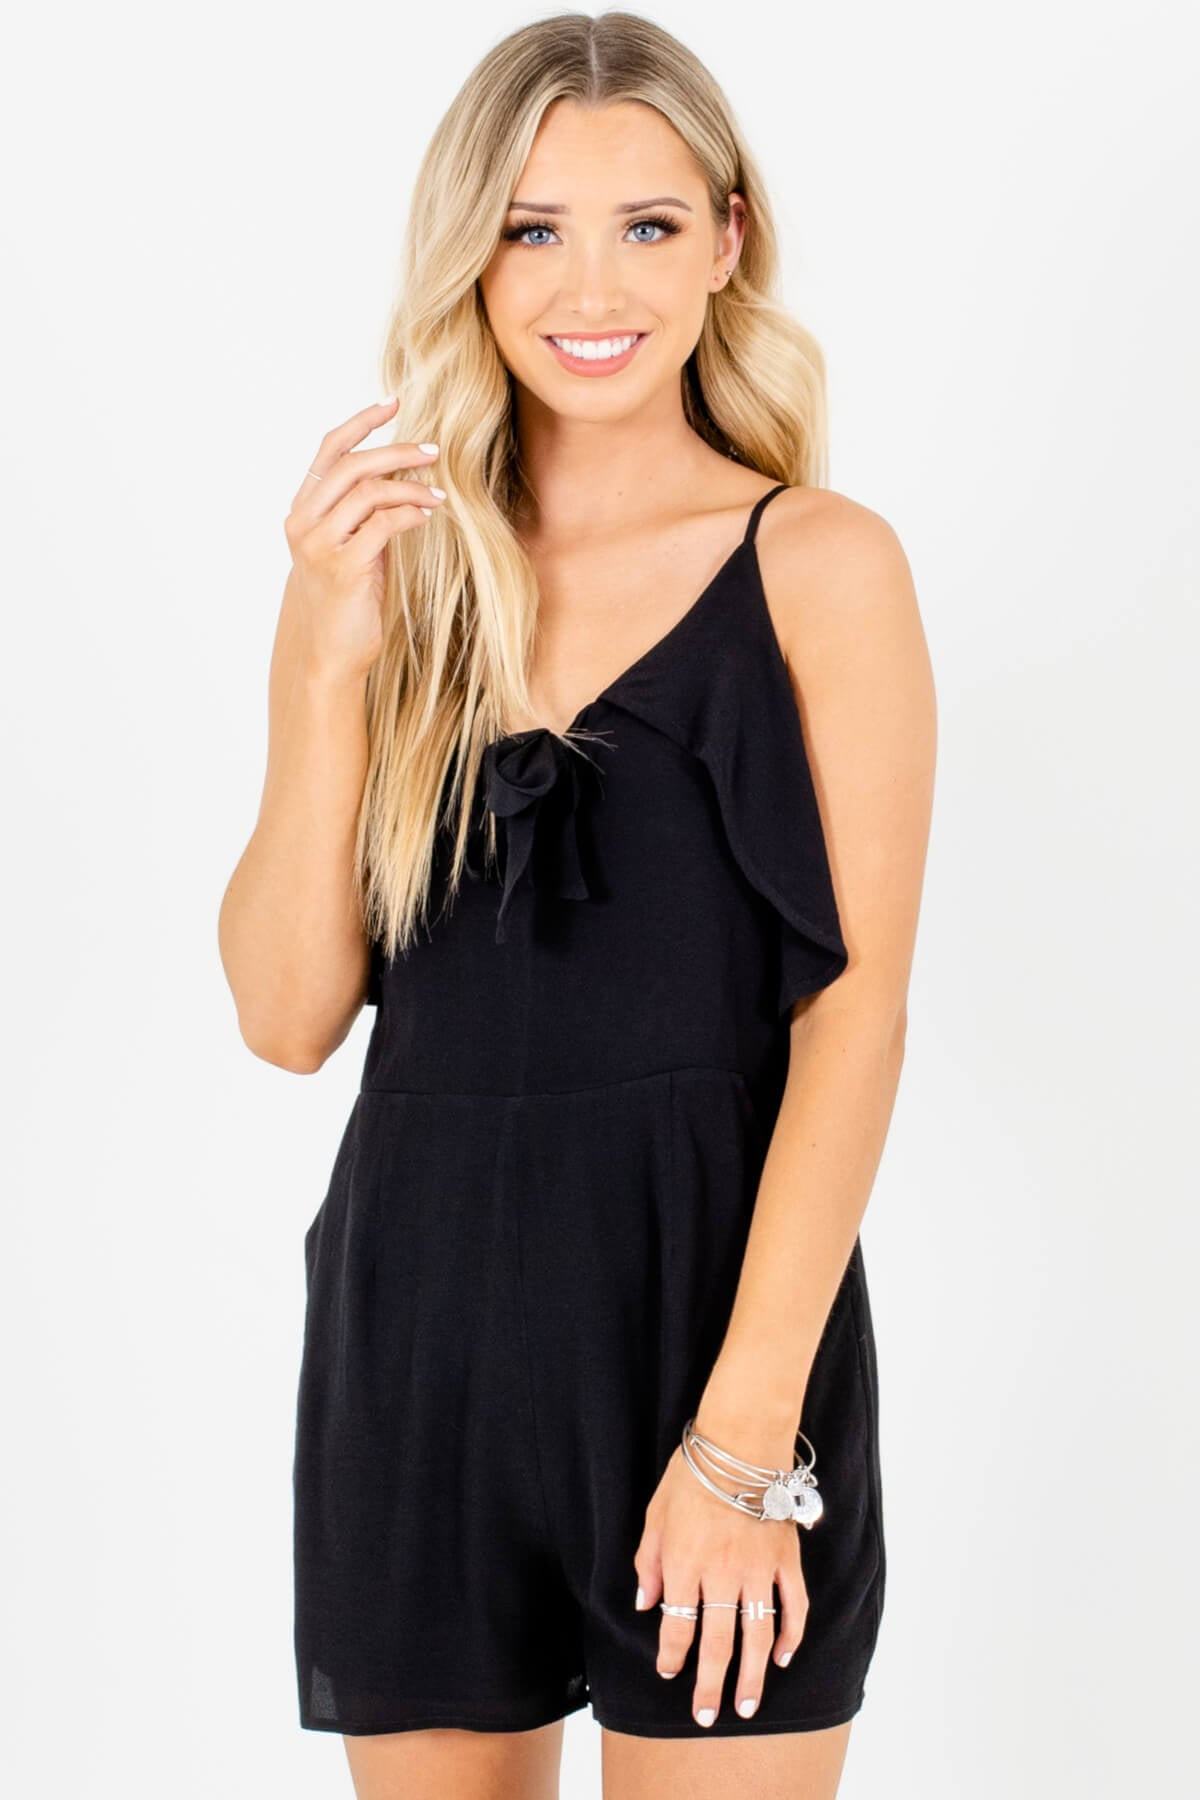 Black Ruffle Tie Front Boutique Womens Rompers with Pockets